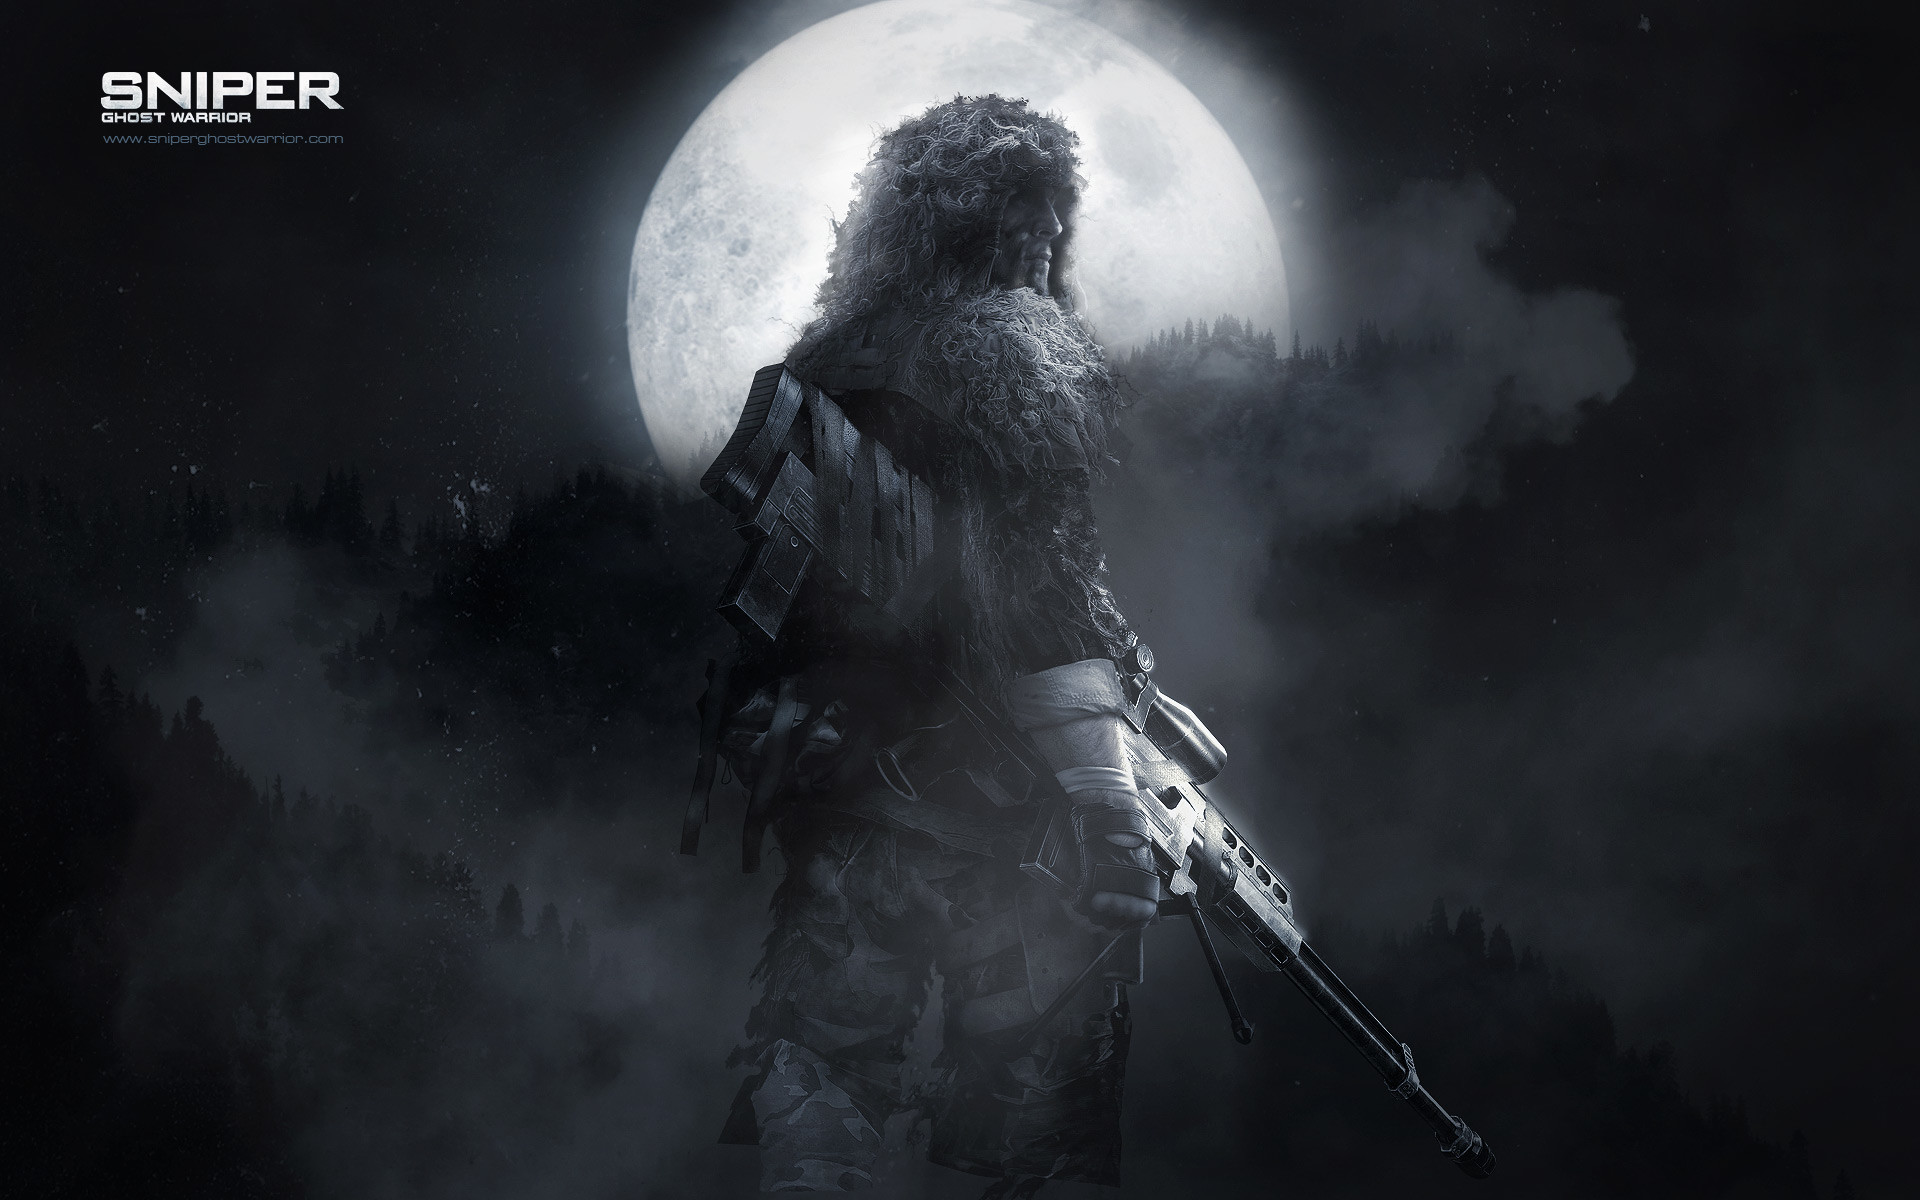 1920x1200 wallpapers, warrior, papers, ghost, sniper